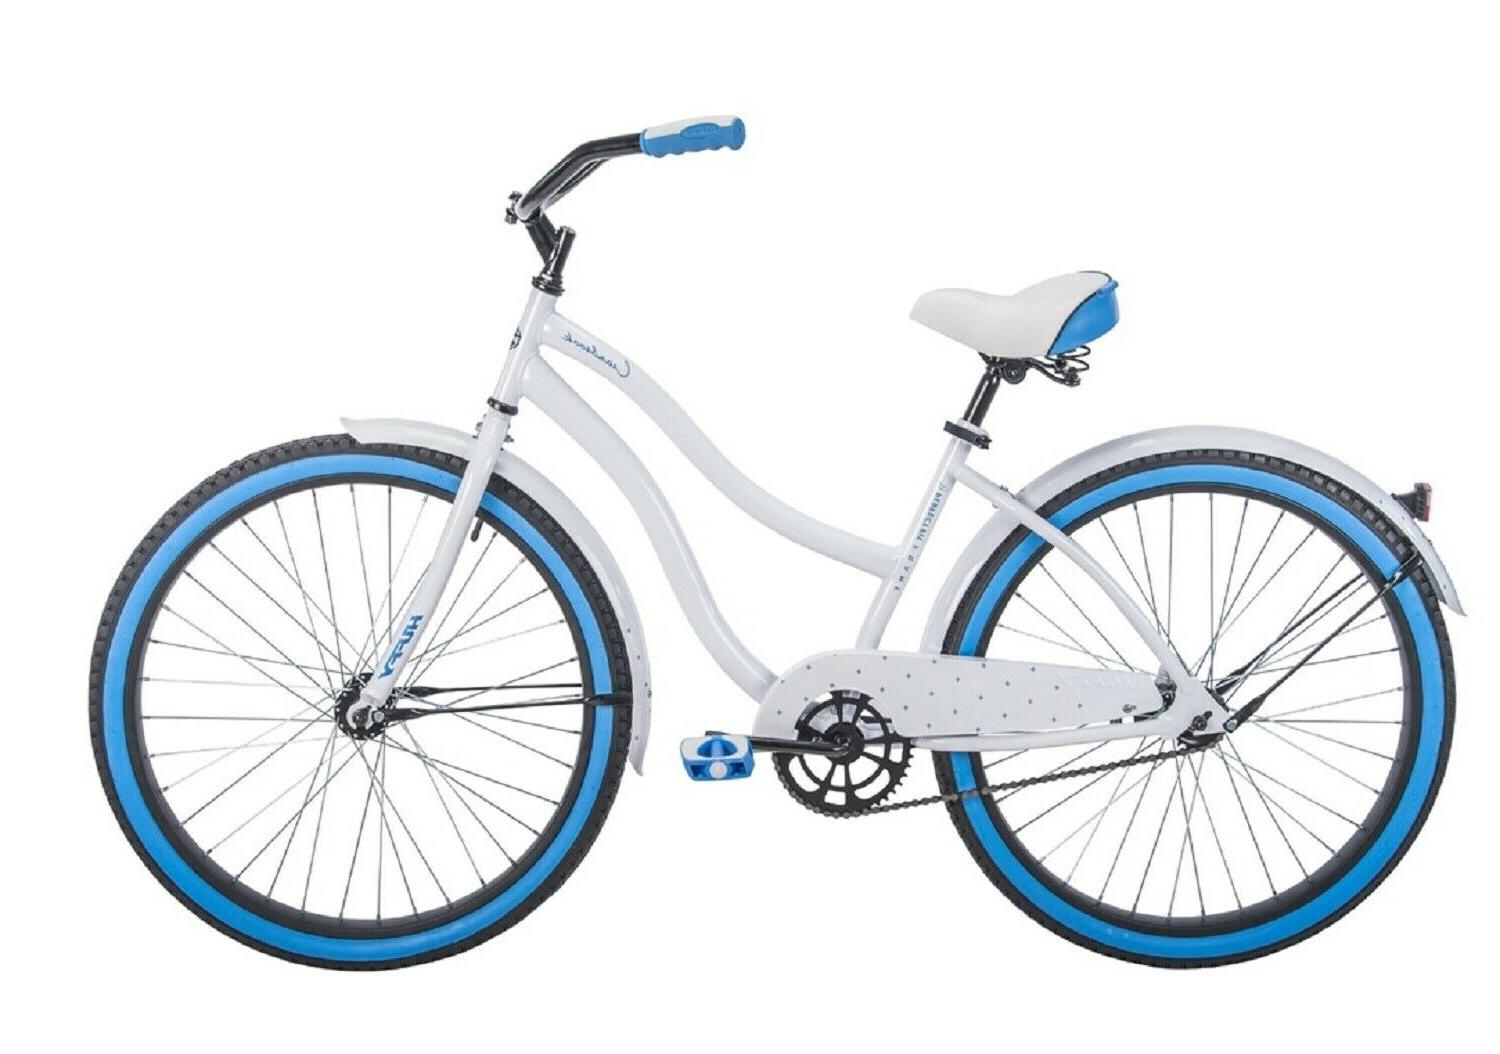 Cruiser Bike Women Bikes For Teens Girls 26 Inch Bicycle Spo